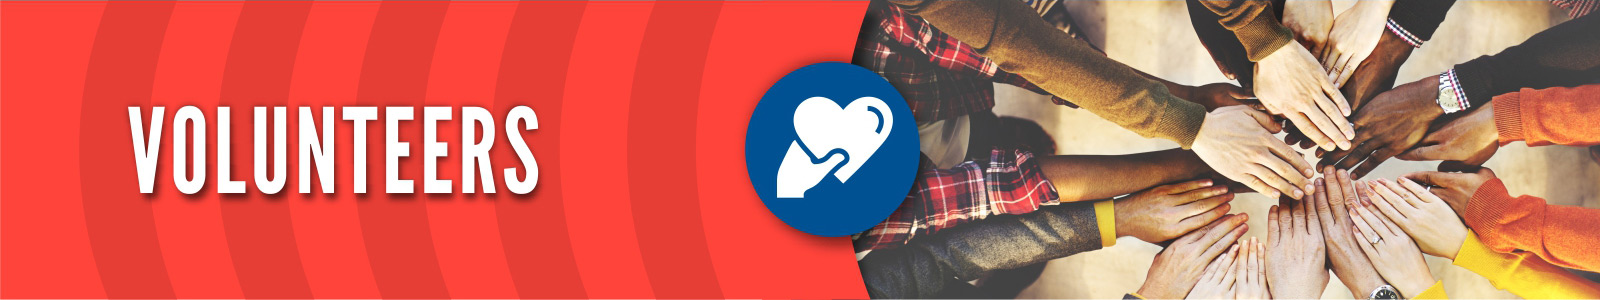 Volunteers support the Heart of Illinois United Way by coordinating workplace campaigns, serving in GENeration United and Youth United, serving on grant review panels, helping with labor events or overseeing marketing and finance.